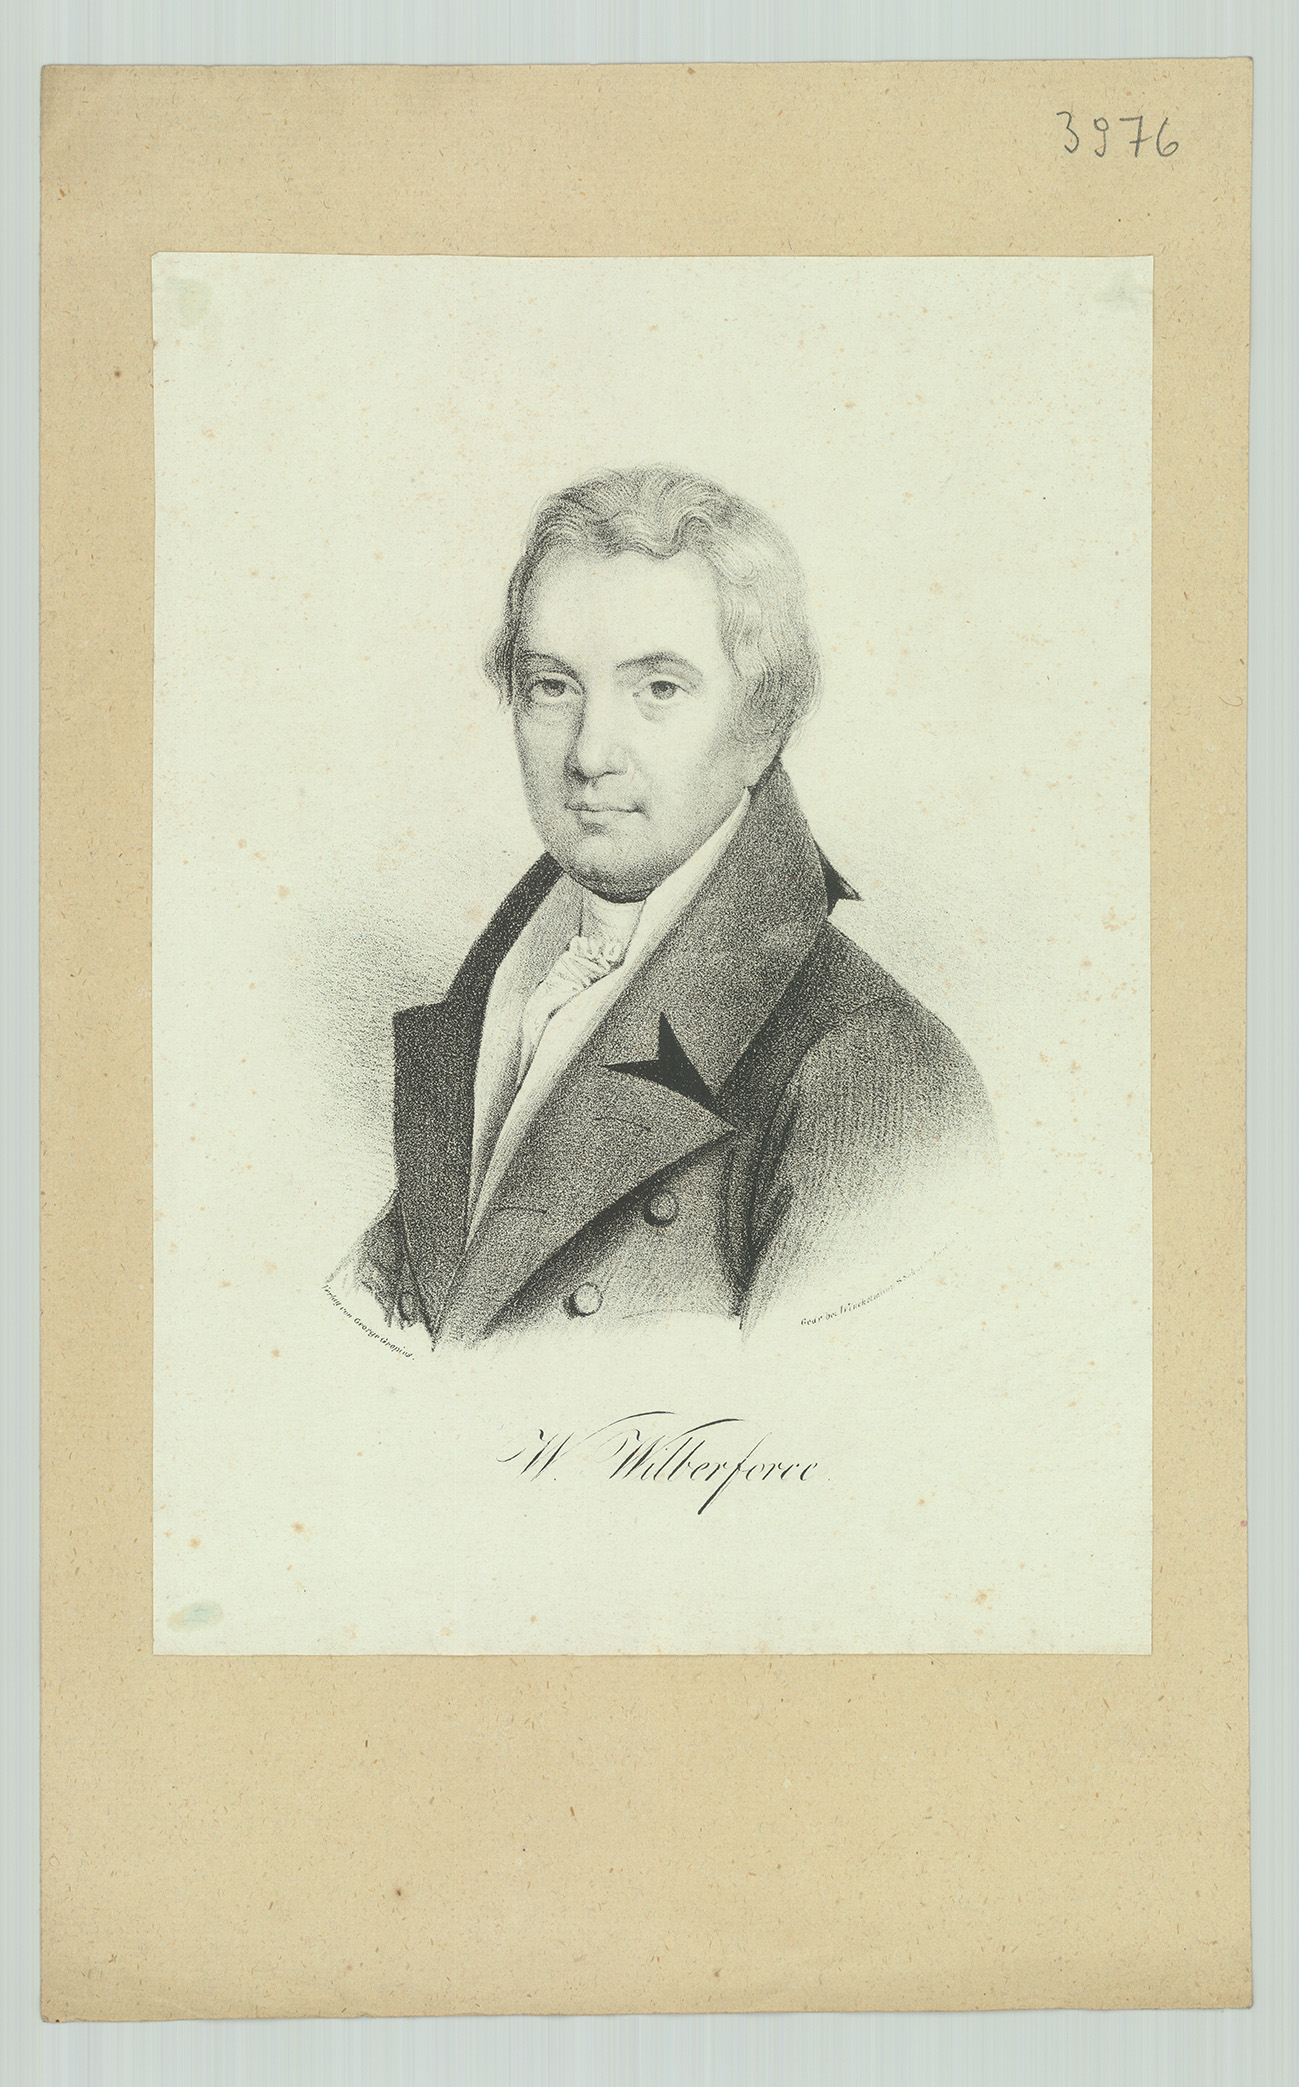 W. Wilberforce.